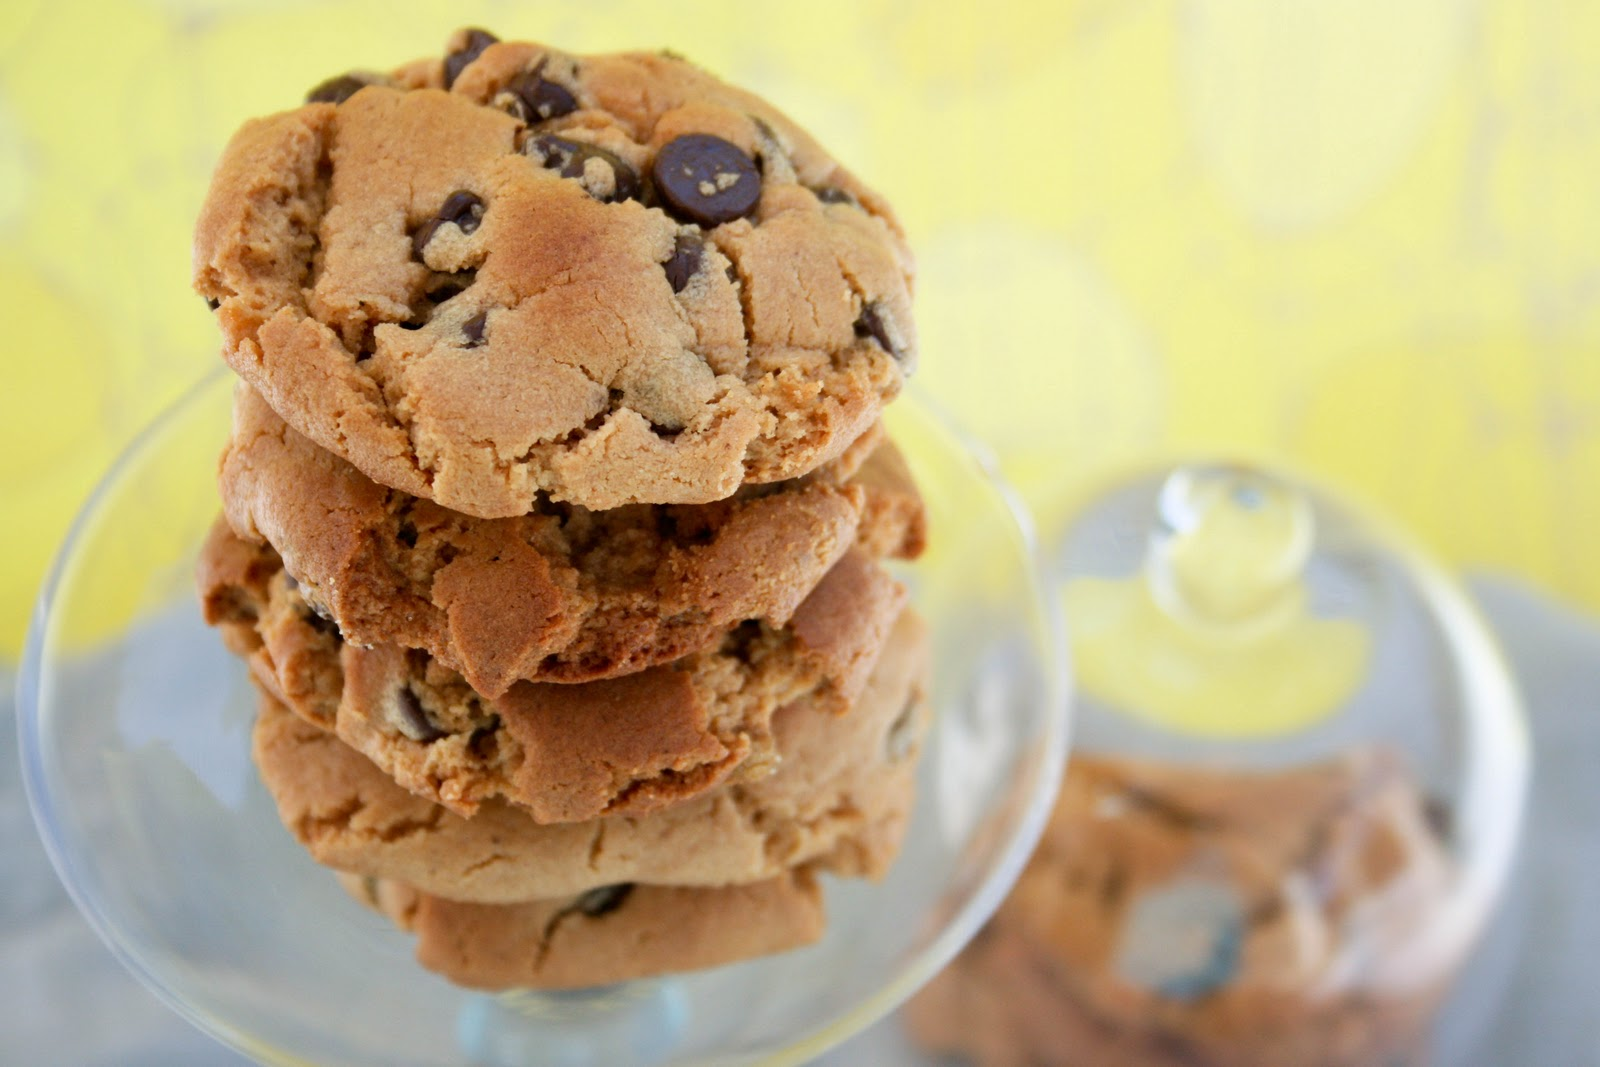 ... soon}, and these Flourless Peanut Butter Chocolate Chip Cookies